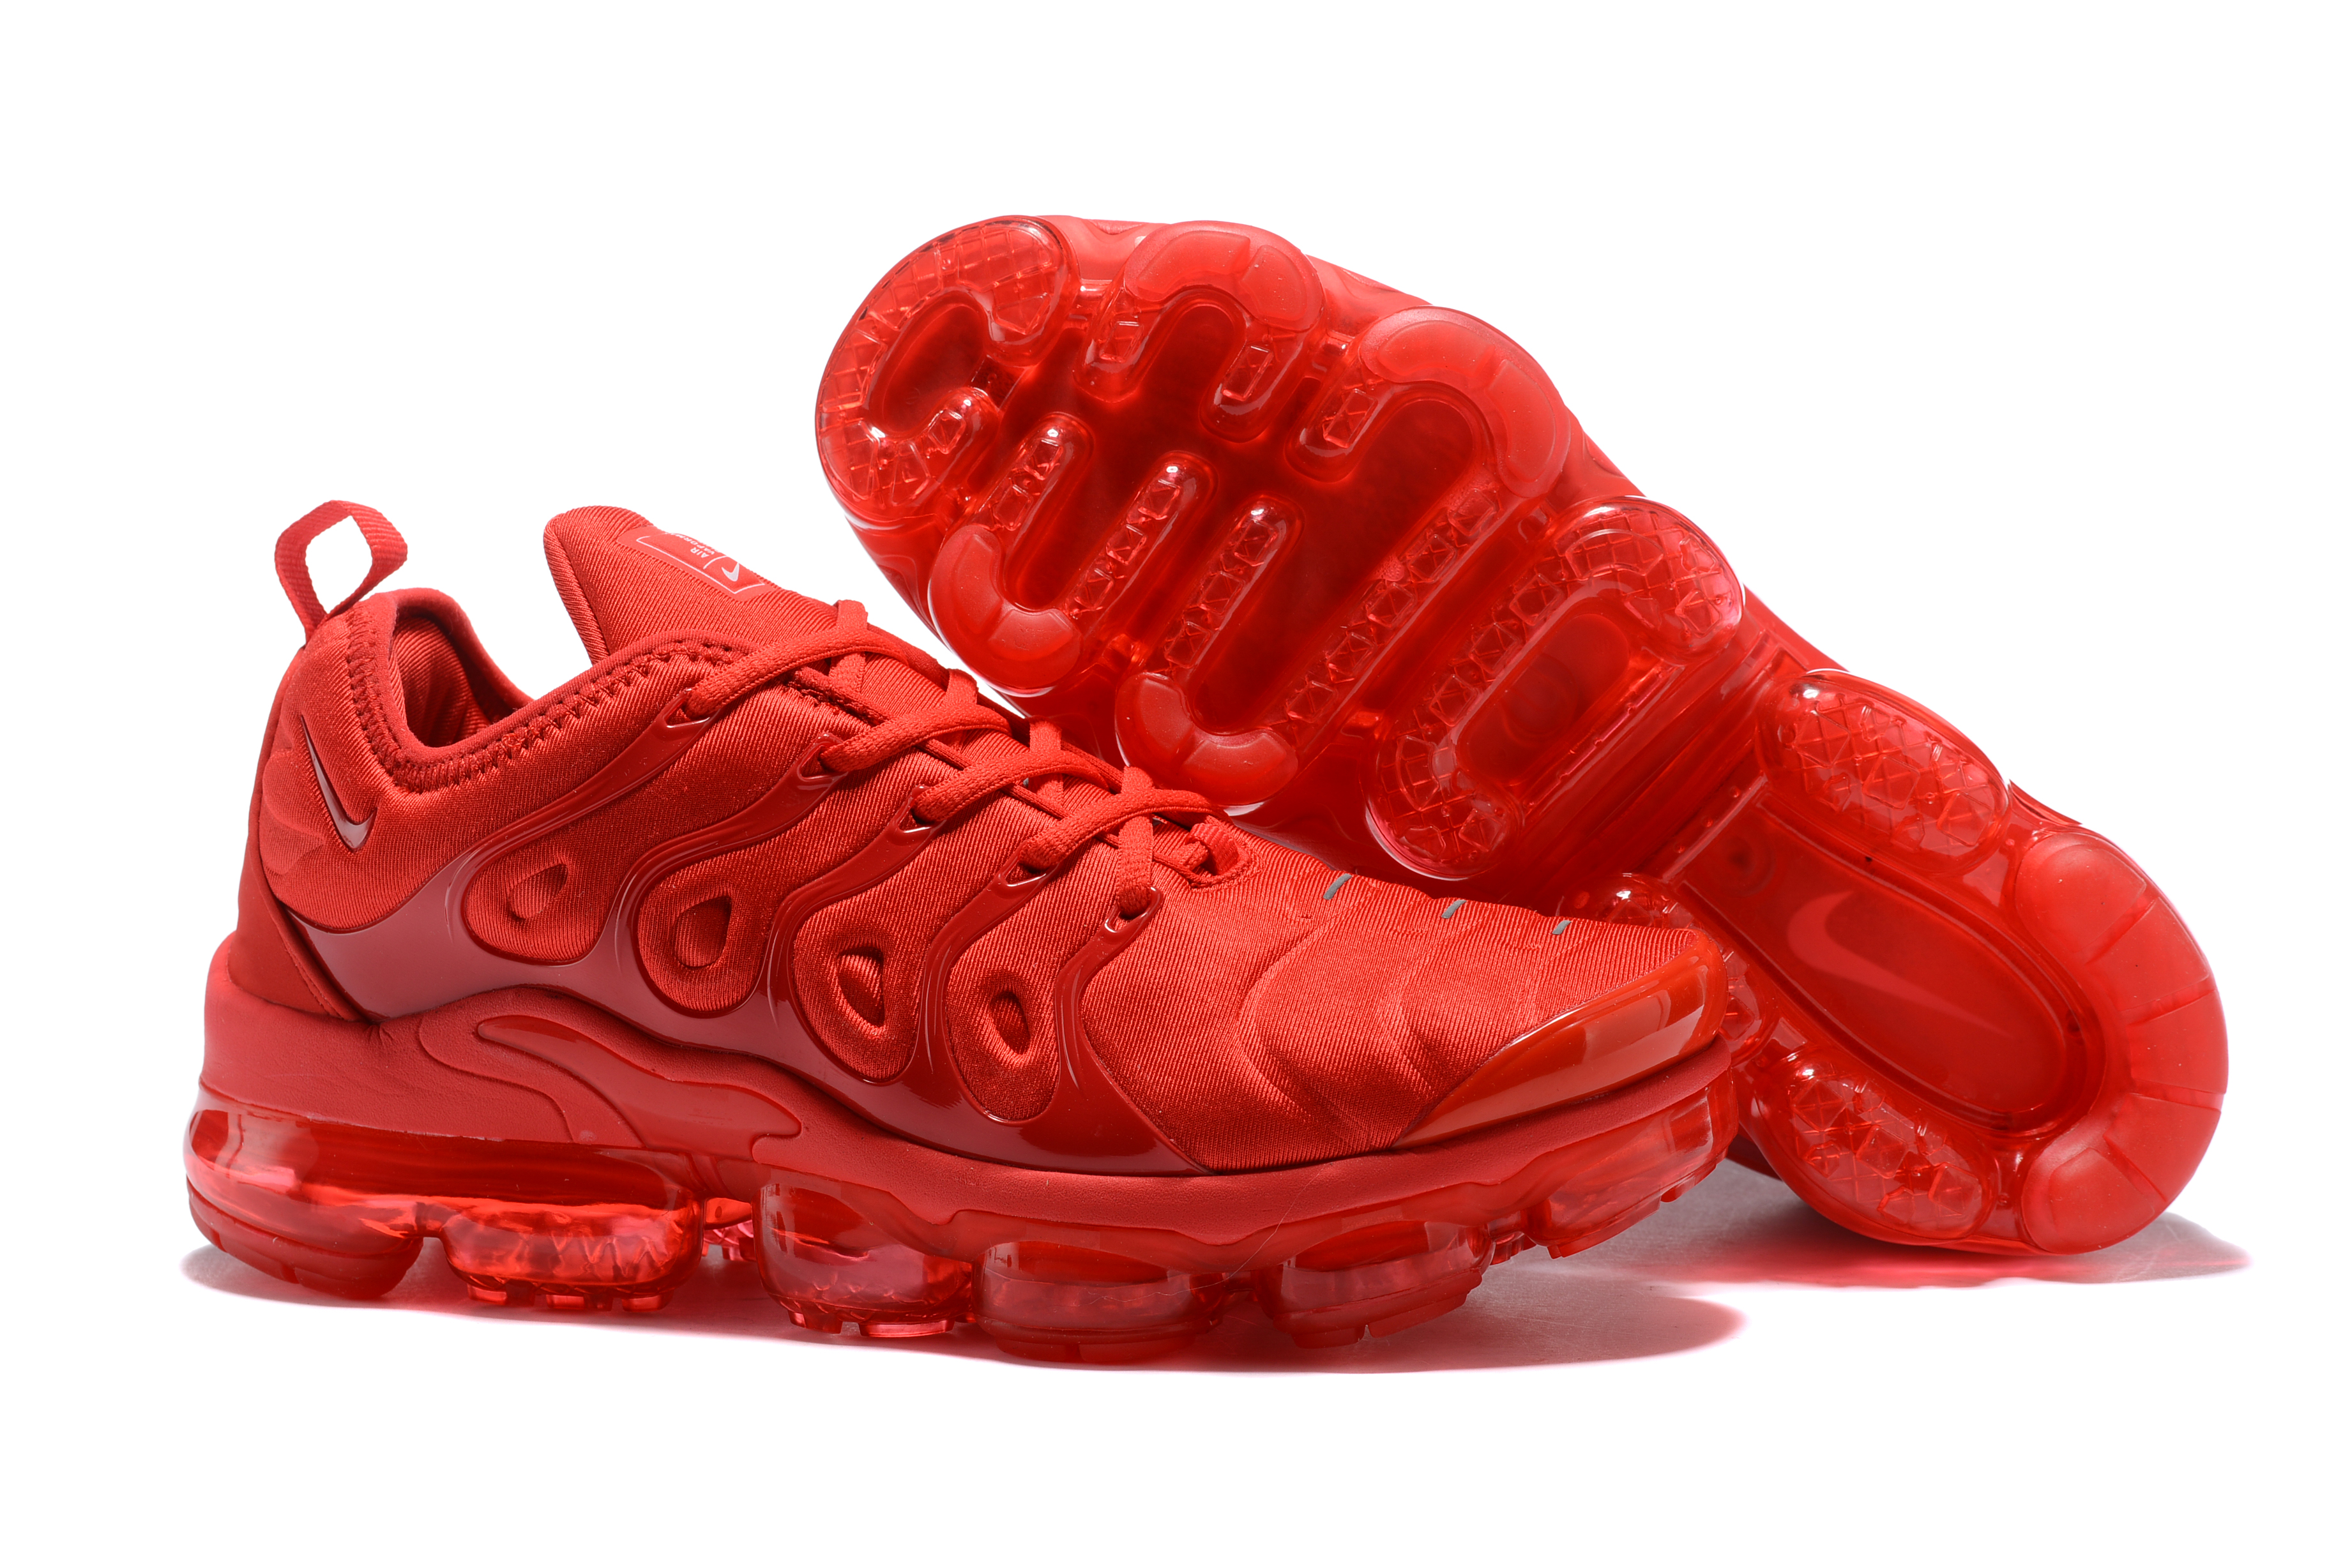 2018 Nike Air Max TN Plus All Red Lover Shoes